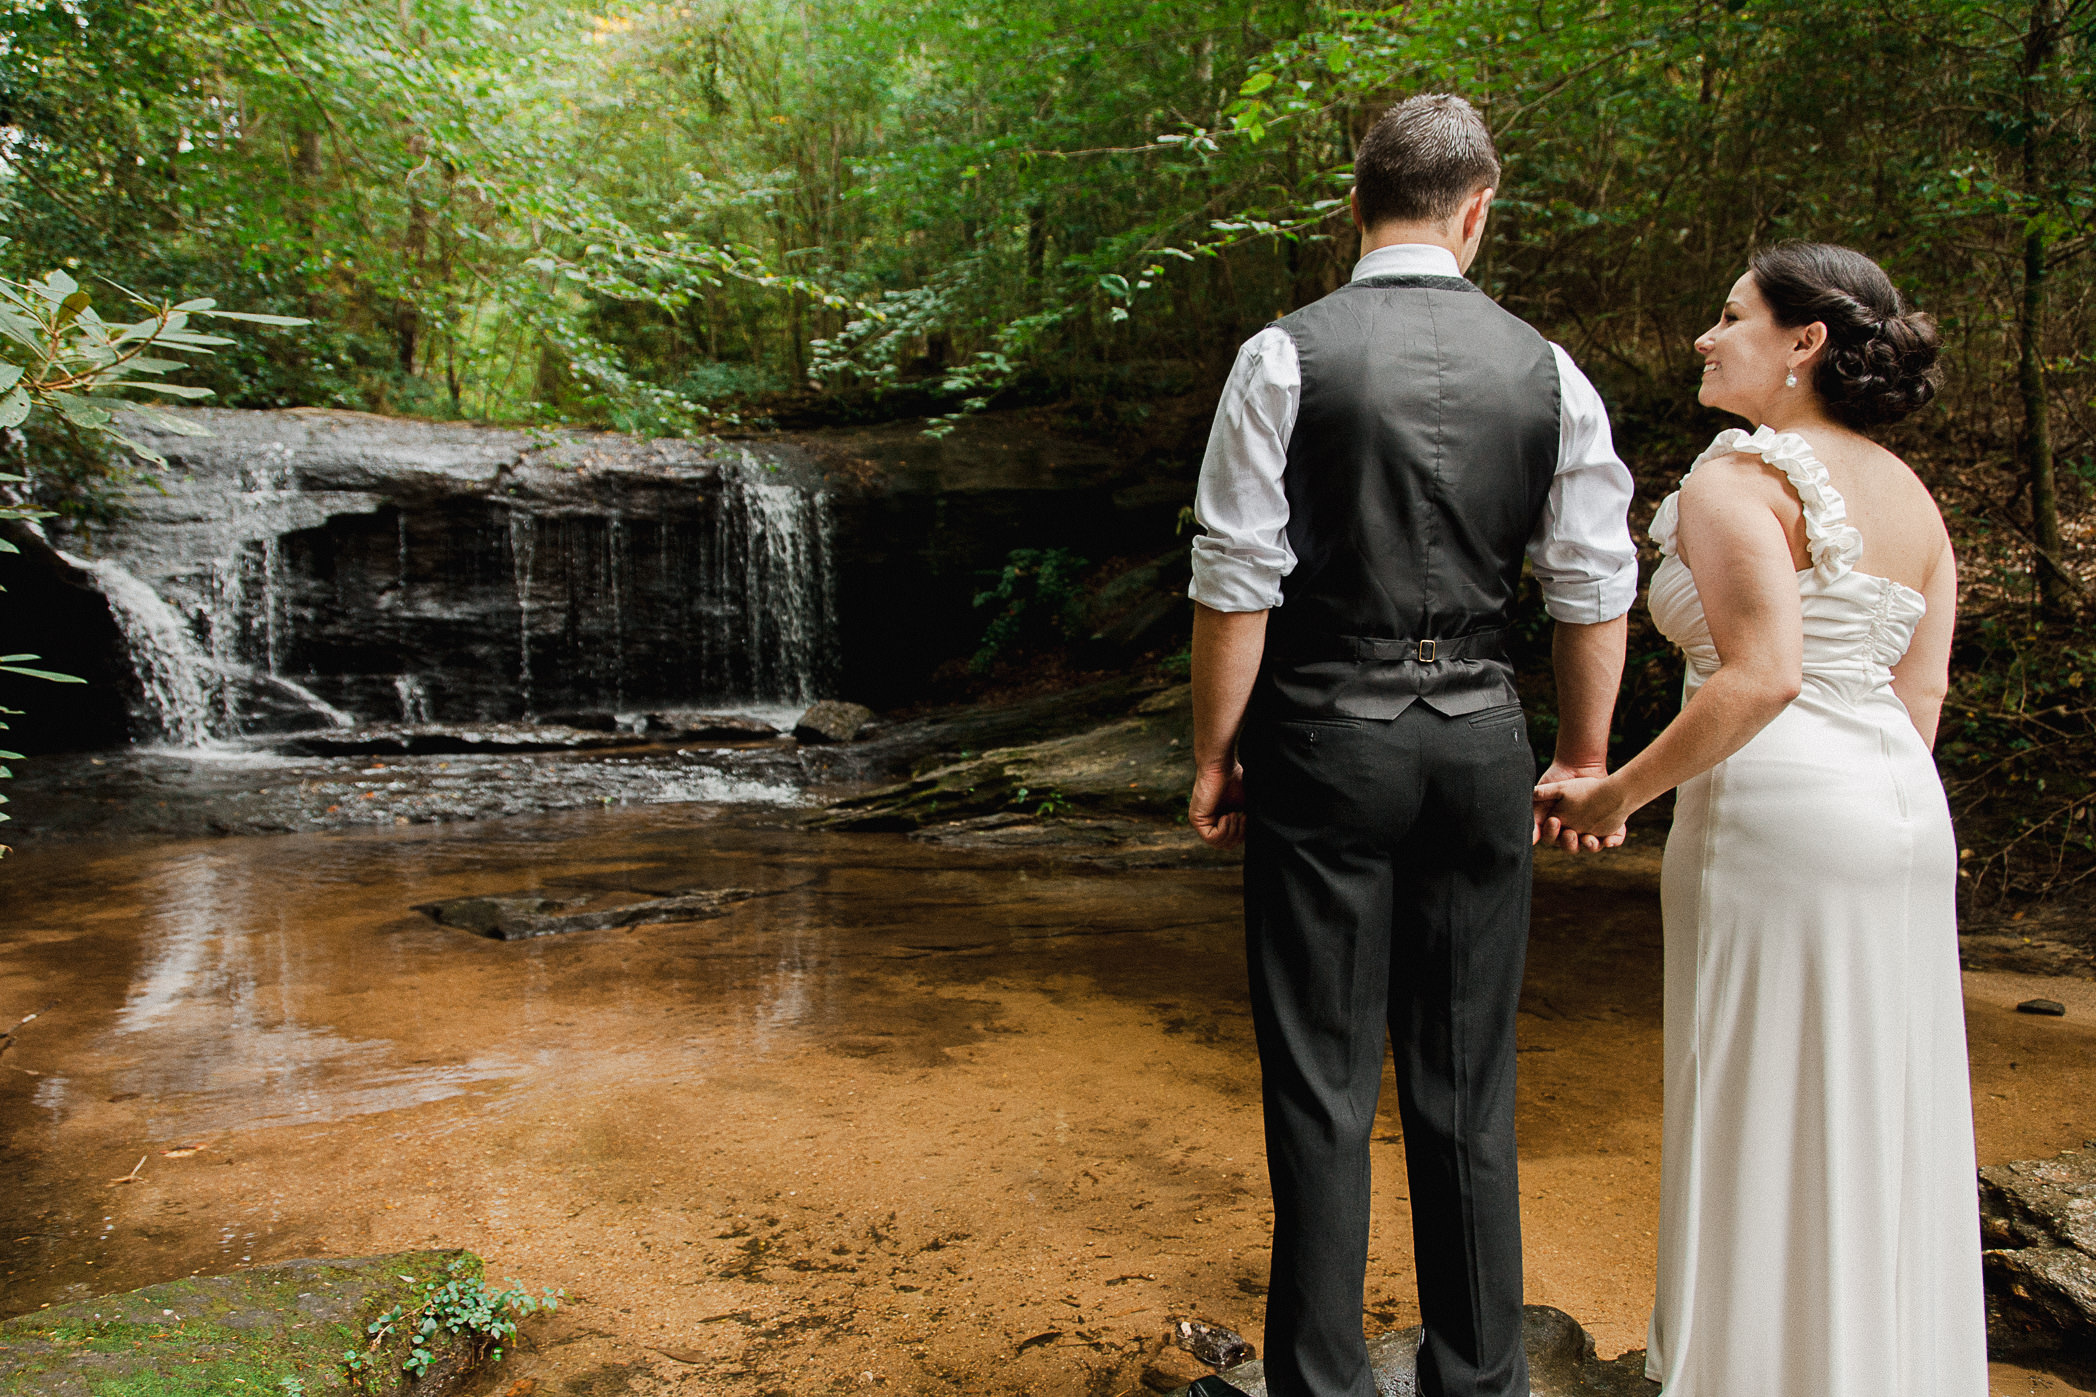 wildcat_falls_wedding (29 of 36).jpg